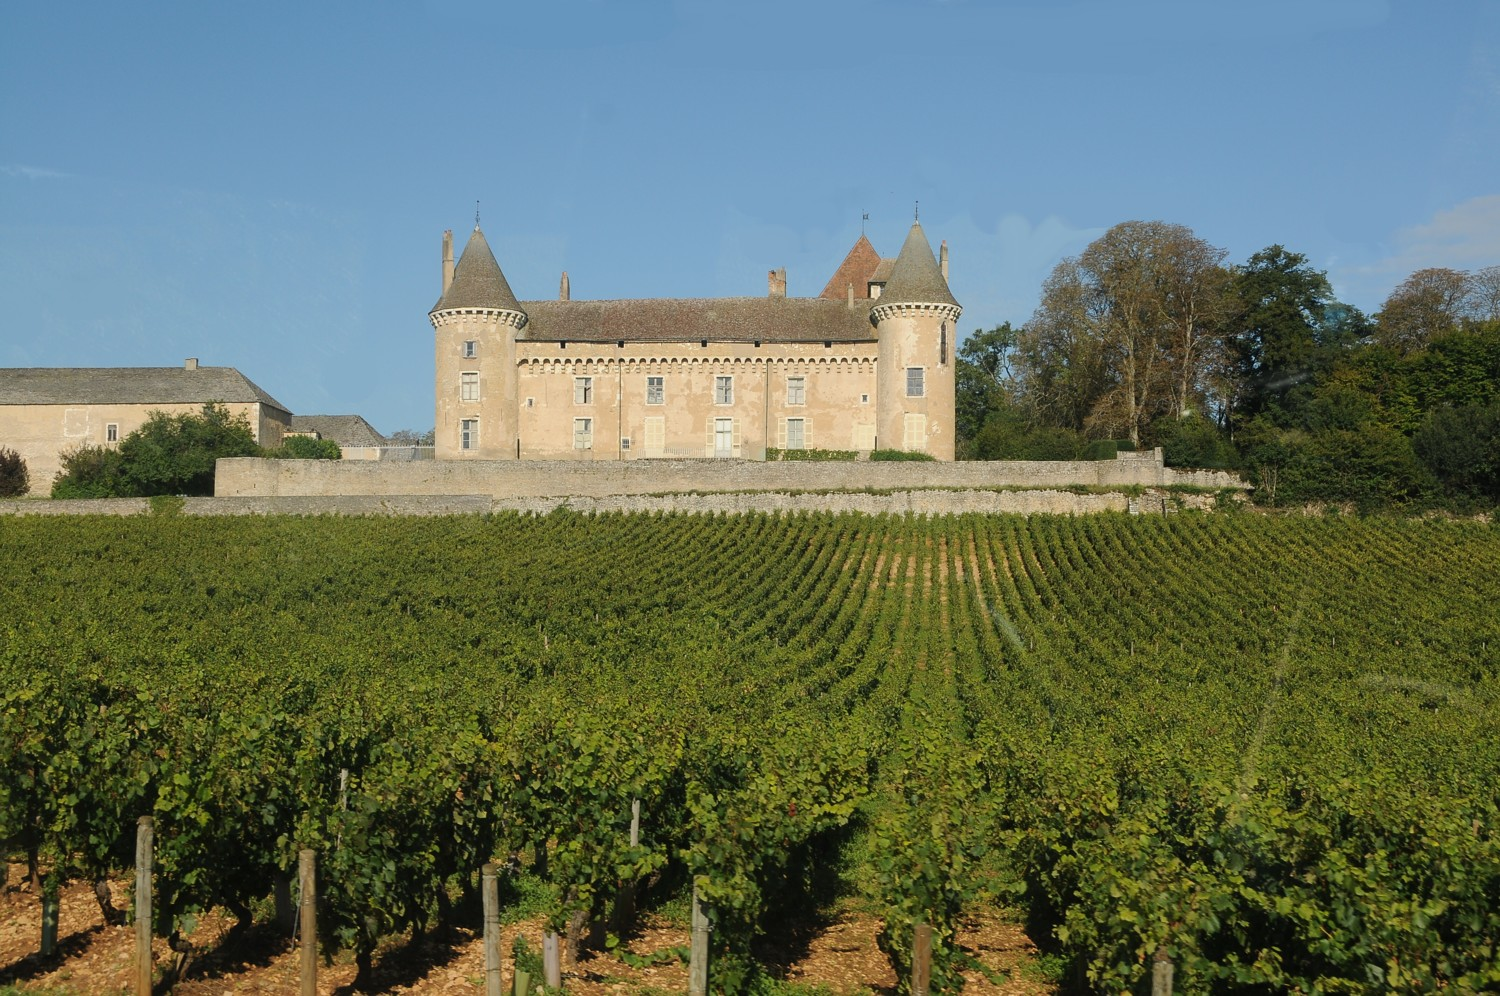 Barging through Burgundy, Day 2: Chateau de Rully